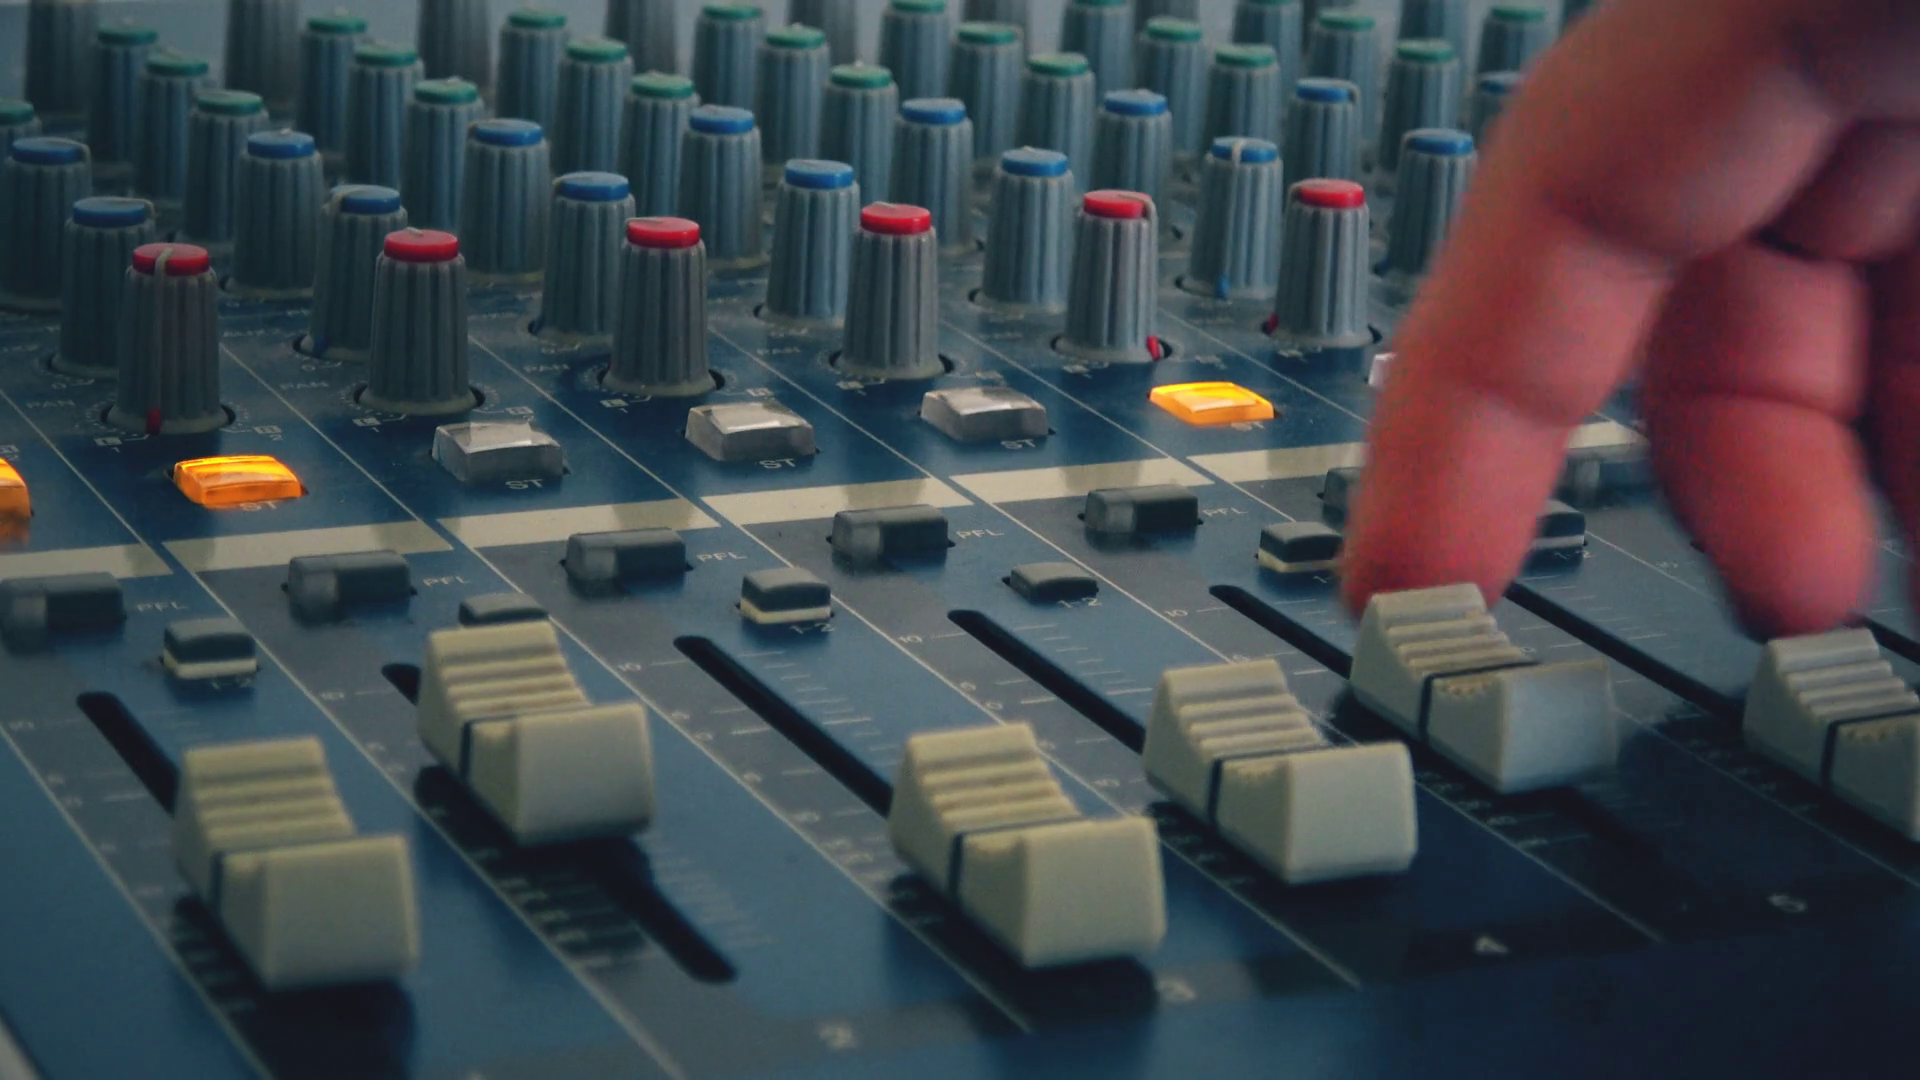 image of someone moving faders on the control surface